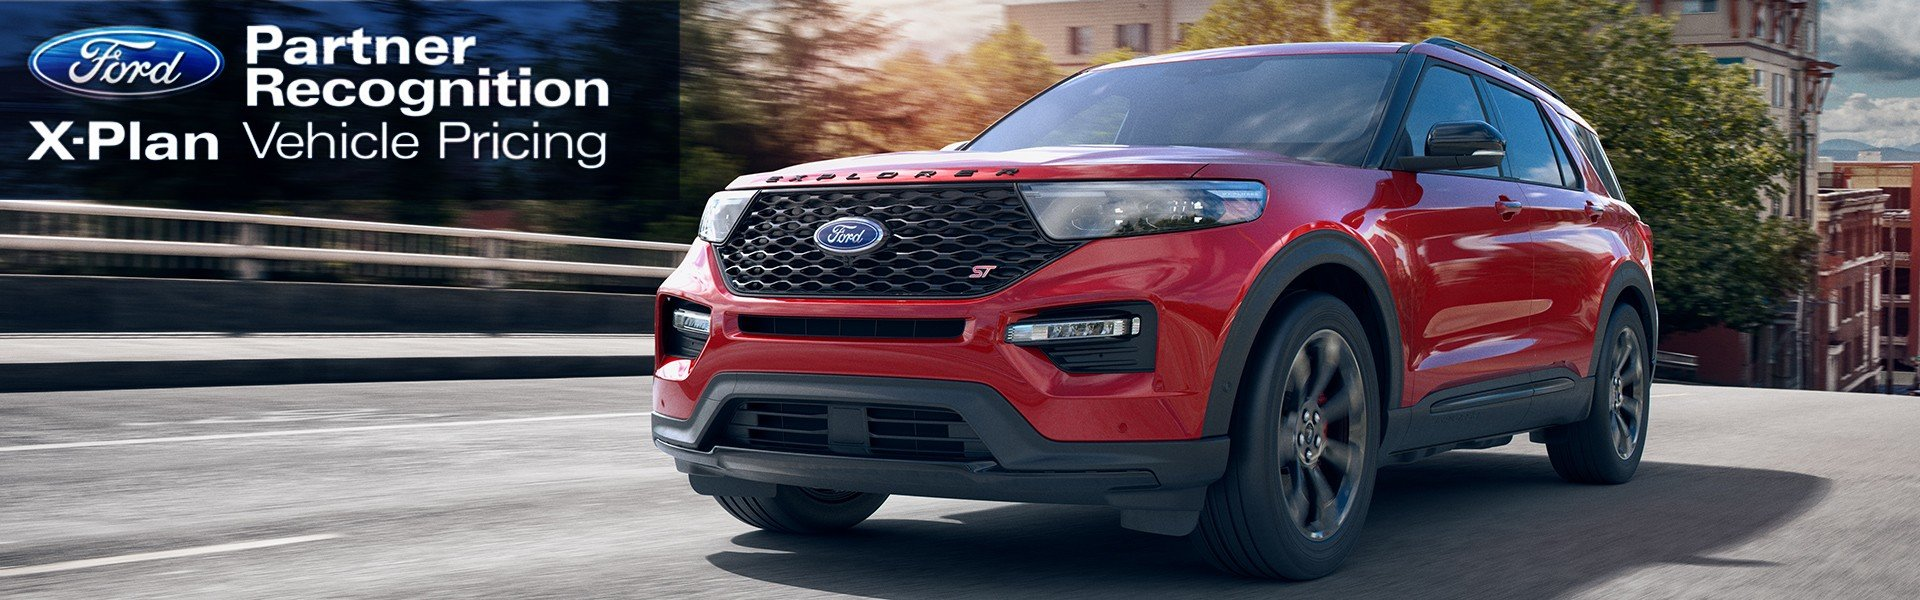 Ford AXZD Plan